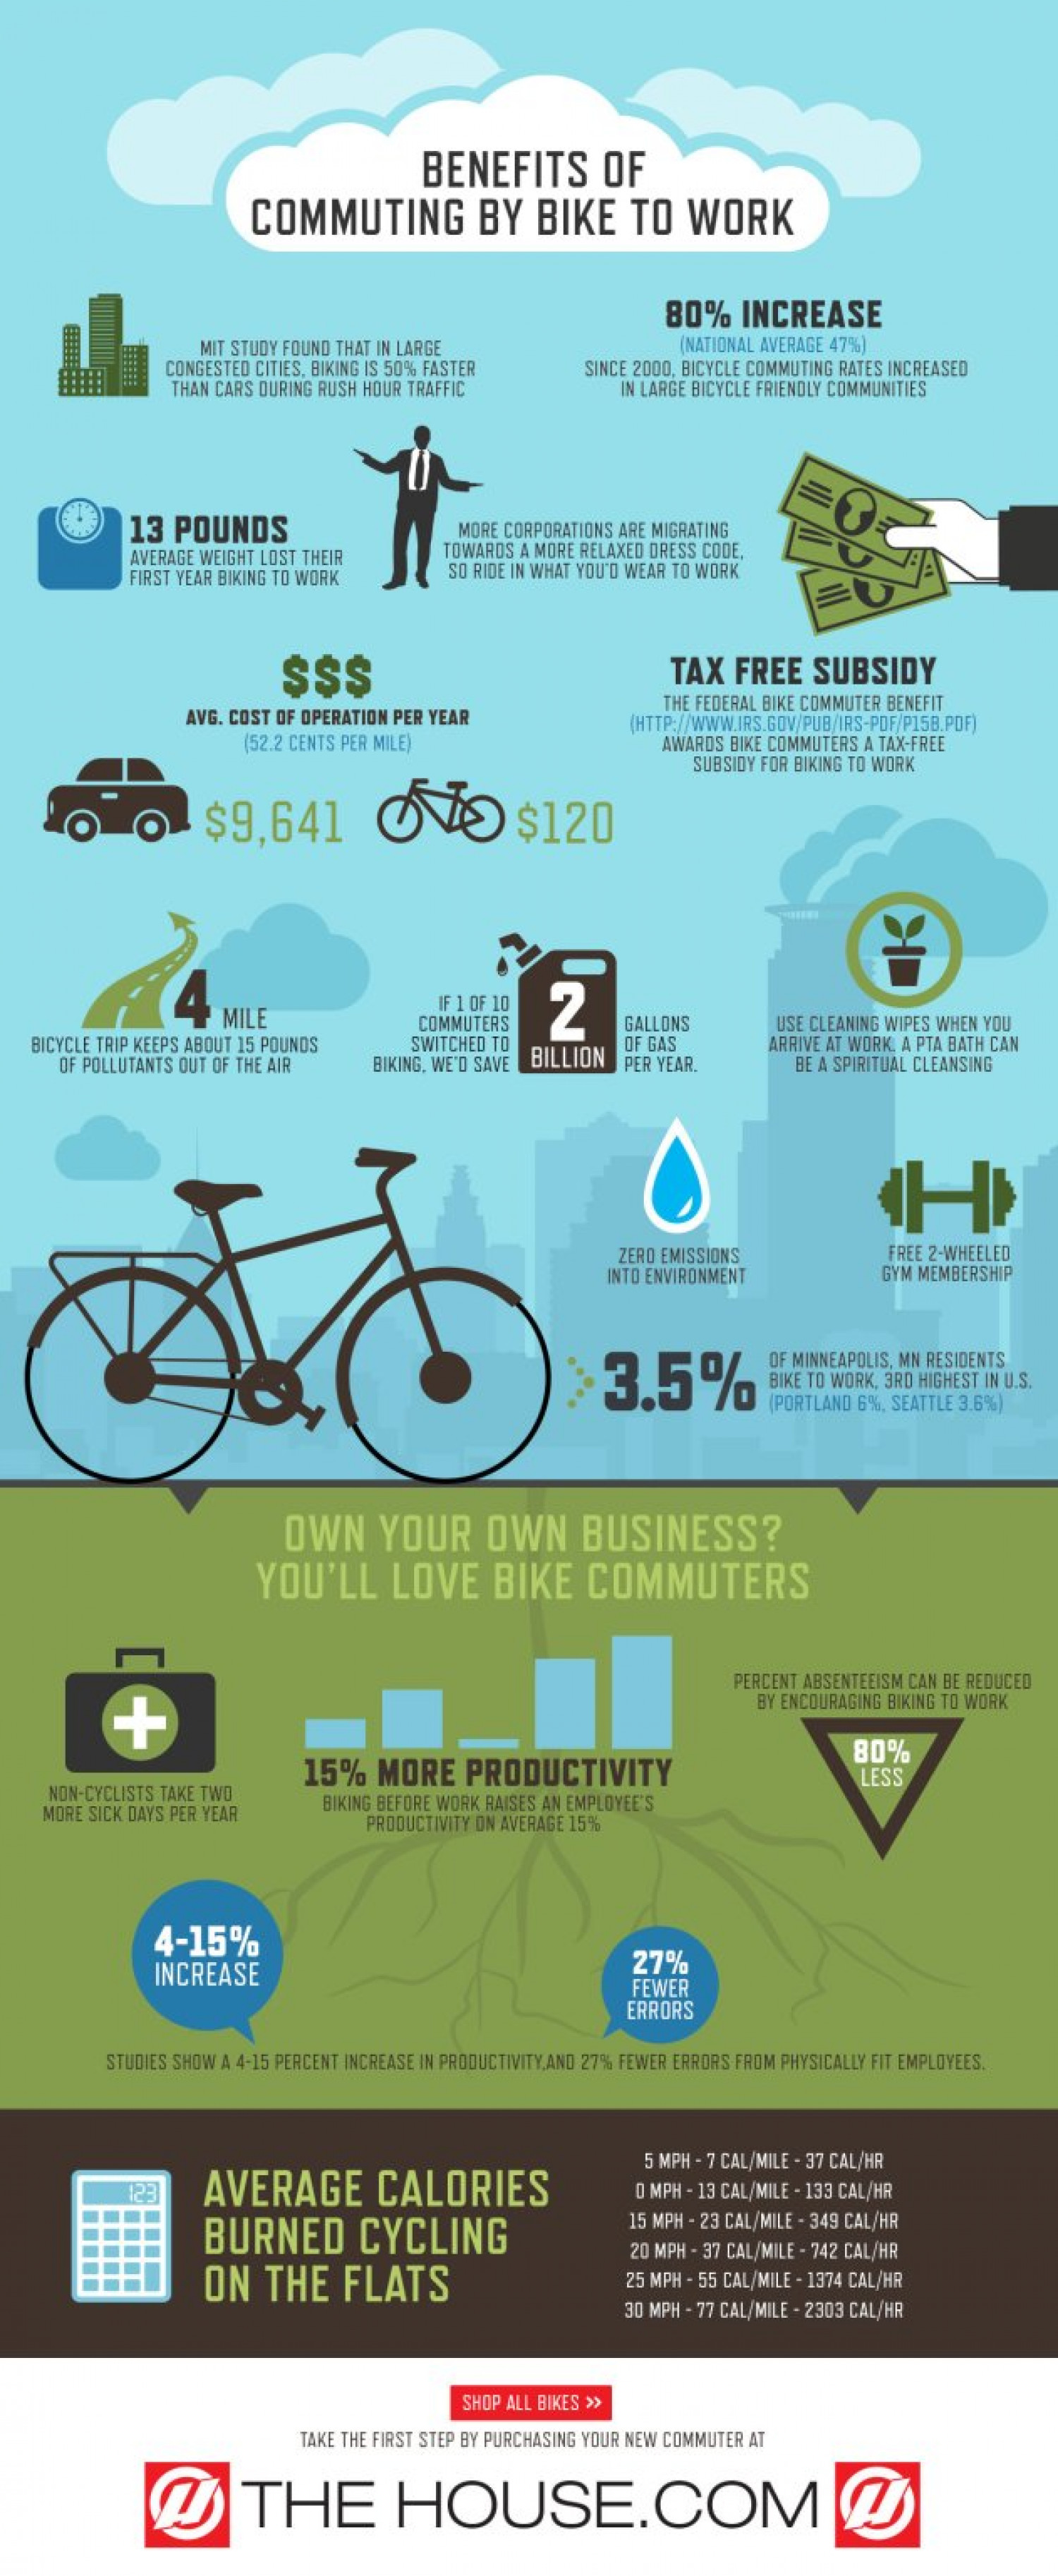 Benefits of Commuting by Bike to Work Infographic